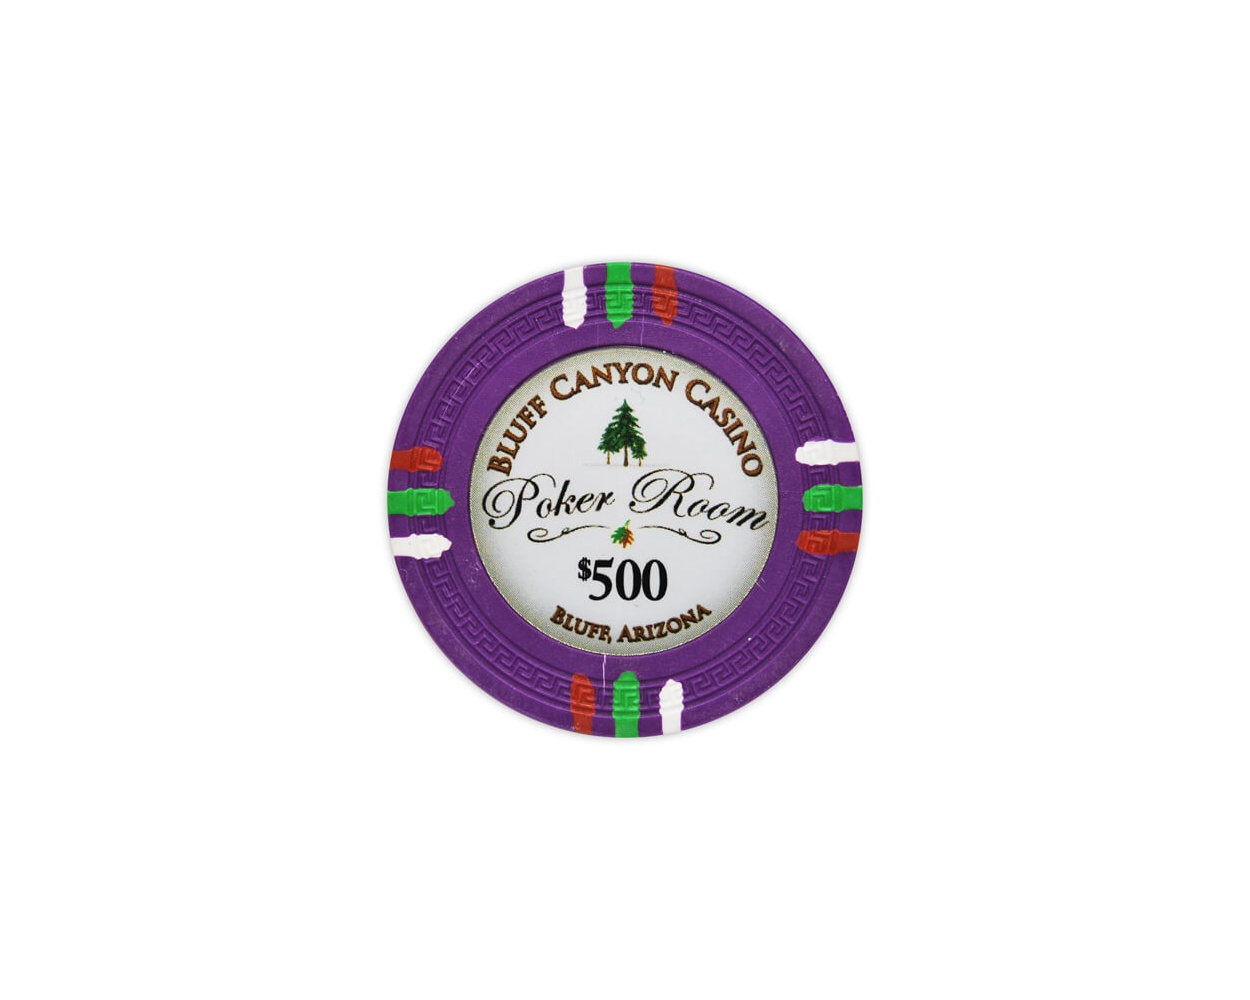 Bluff Canyon - $500 Purple Clay Poker Chips